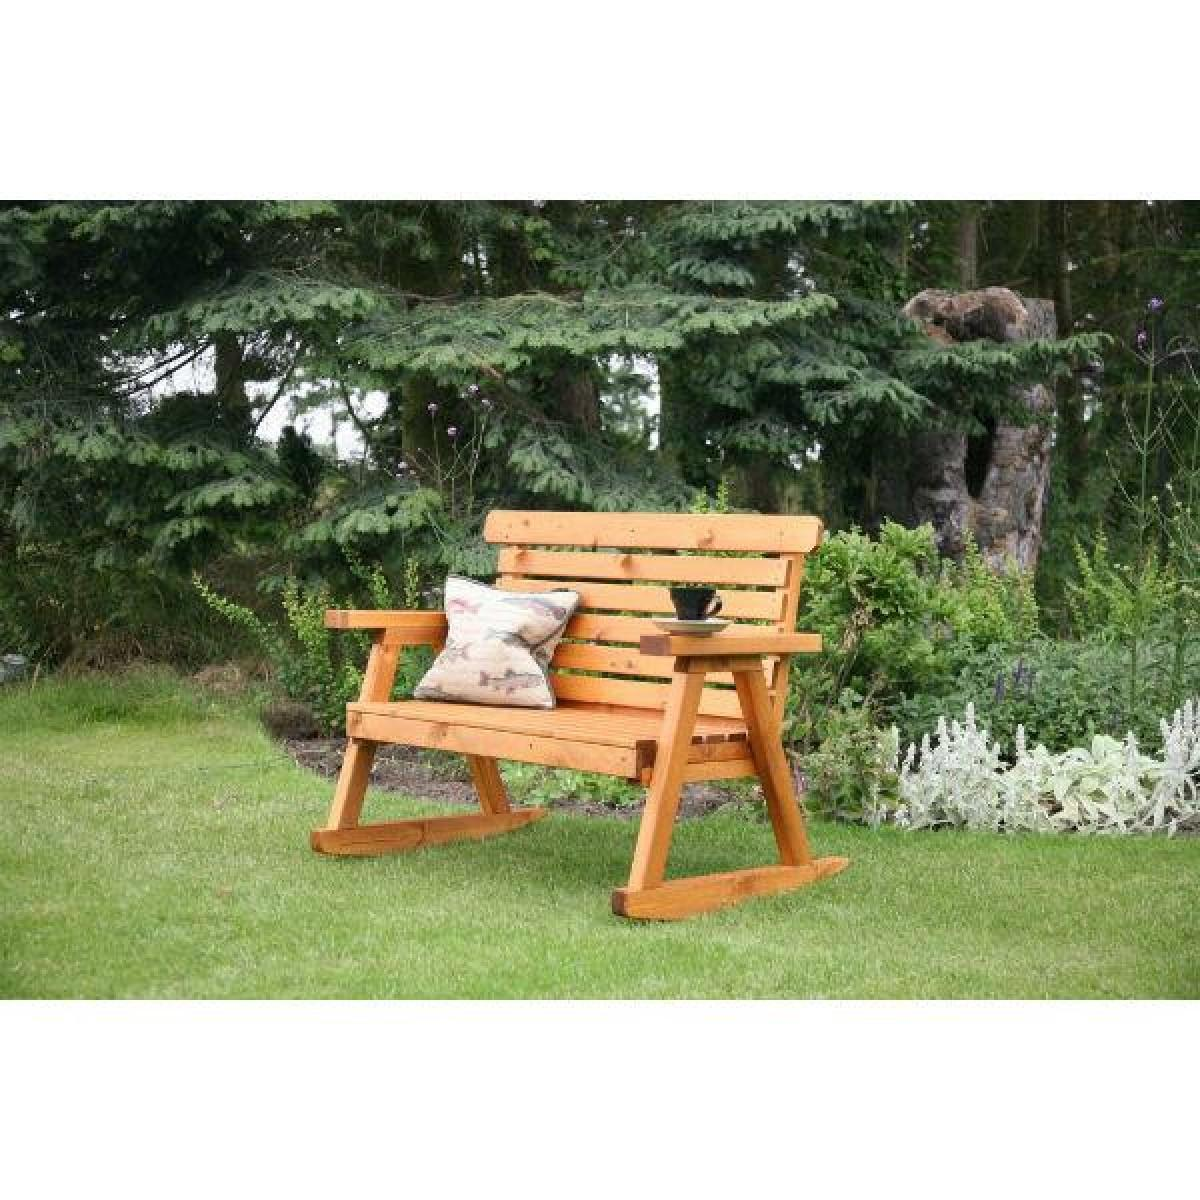 Garden Furniture Dublin outdoor living & garden furniture - delivery throughout ireland